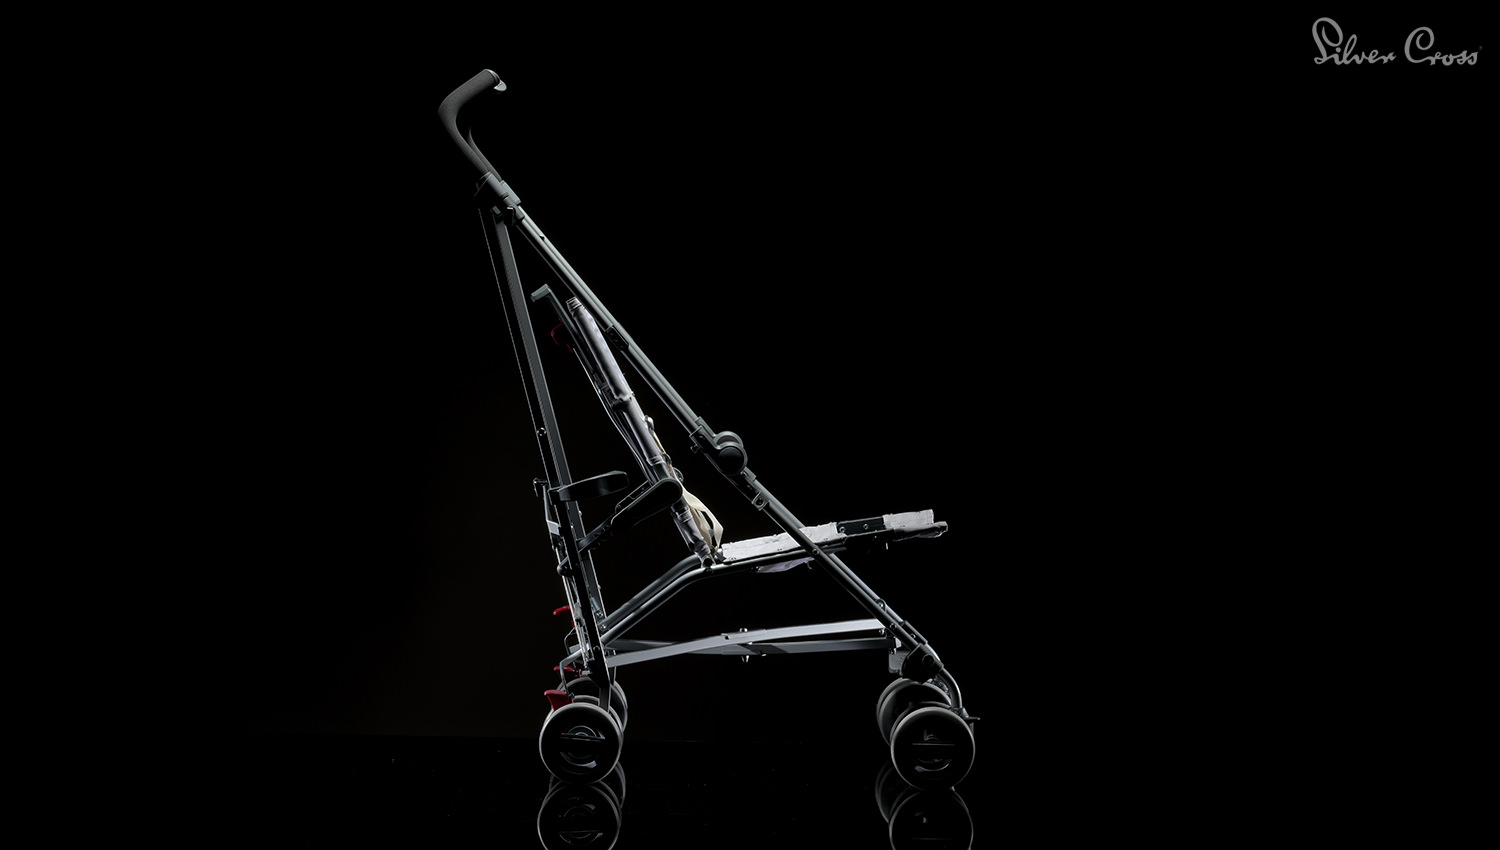 A dramatic use of studio lighting shooting children's product photography and prams for Silver Cross.